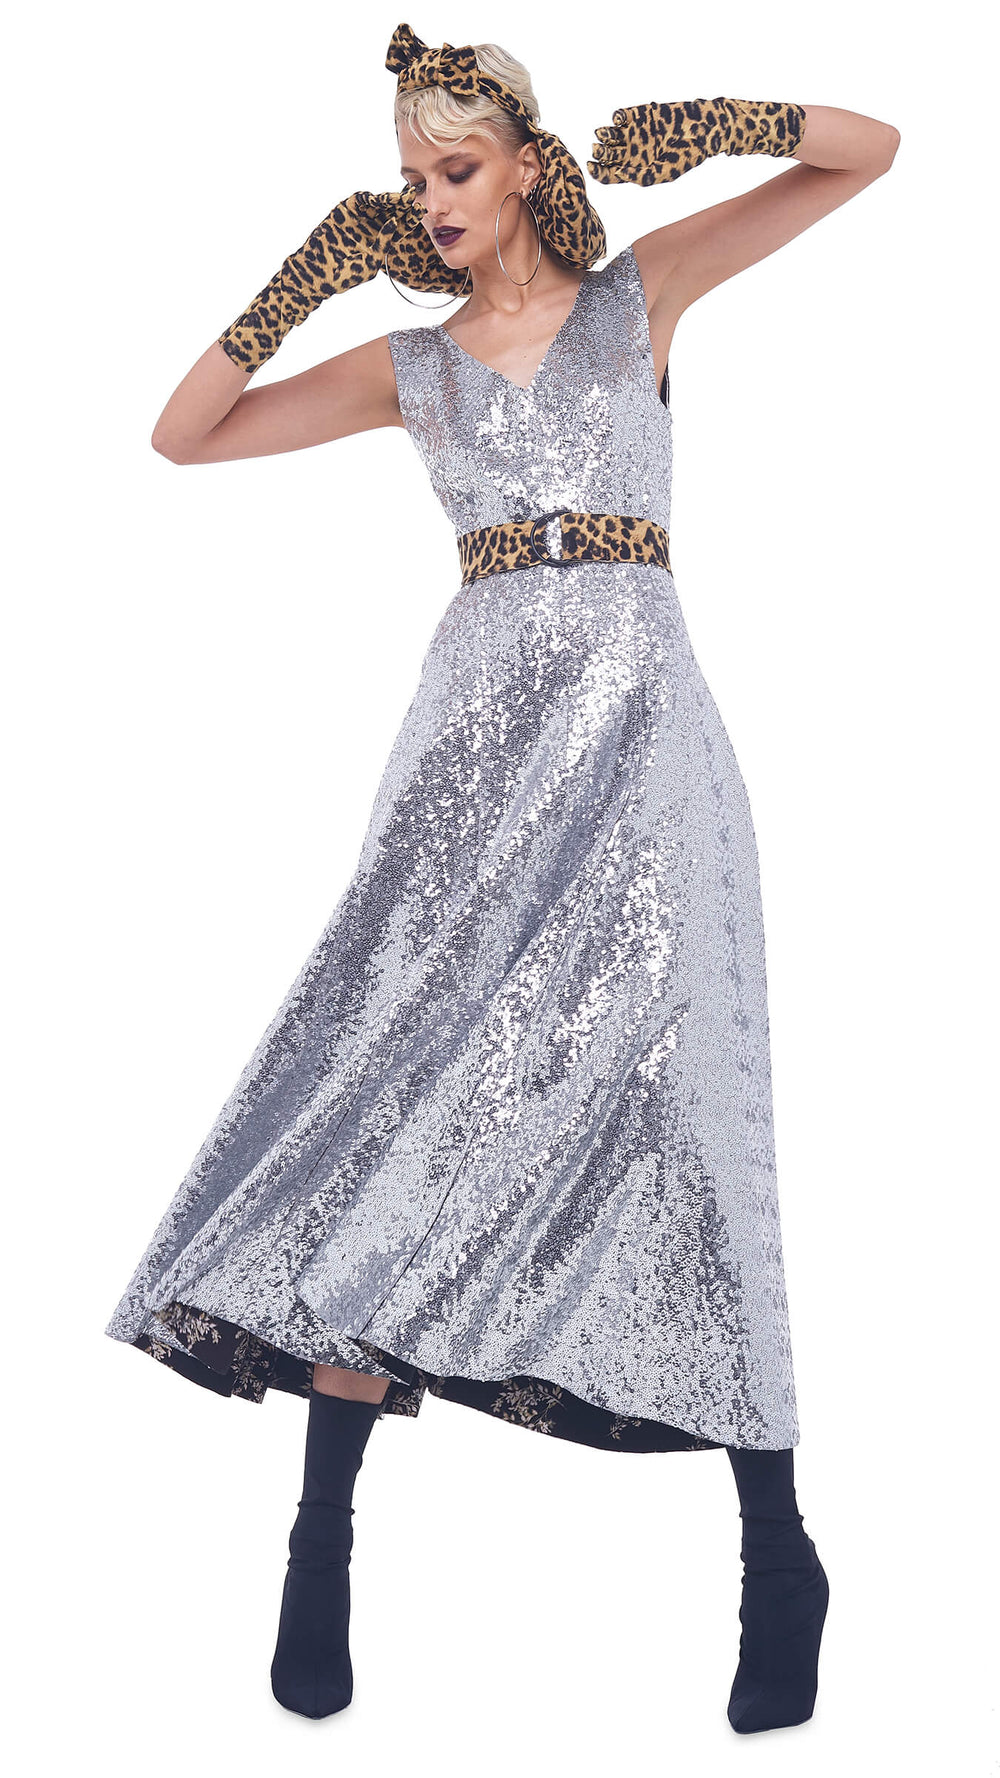 OVERLAPPING SEQUIN GRACE DRESS TO MIDCALF